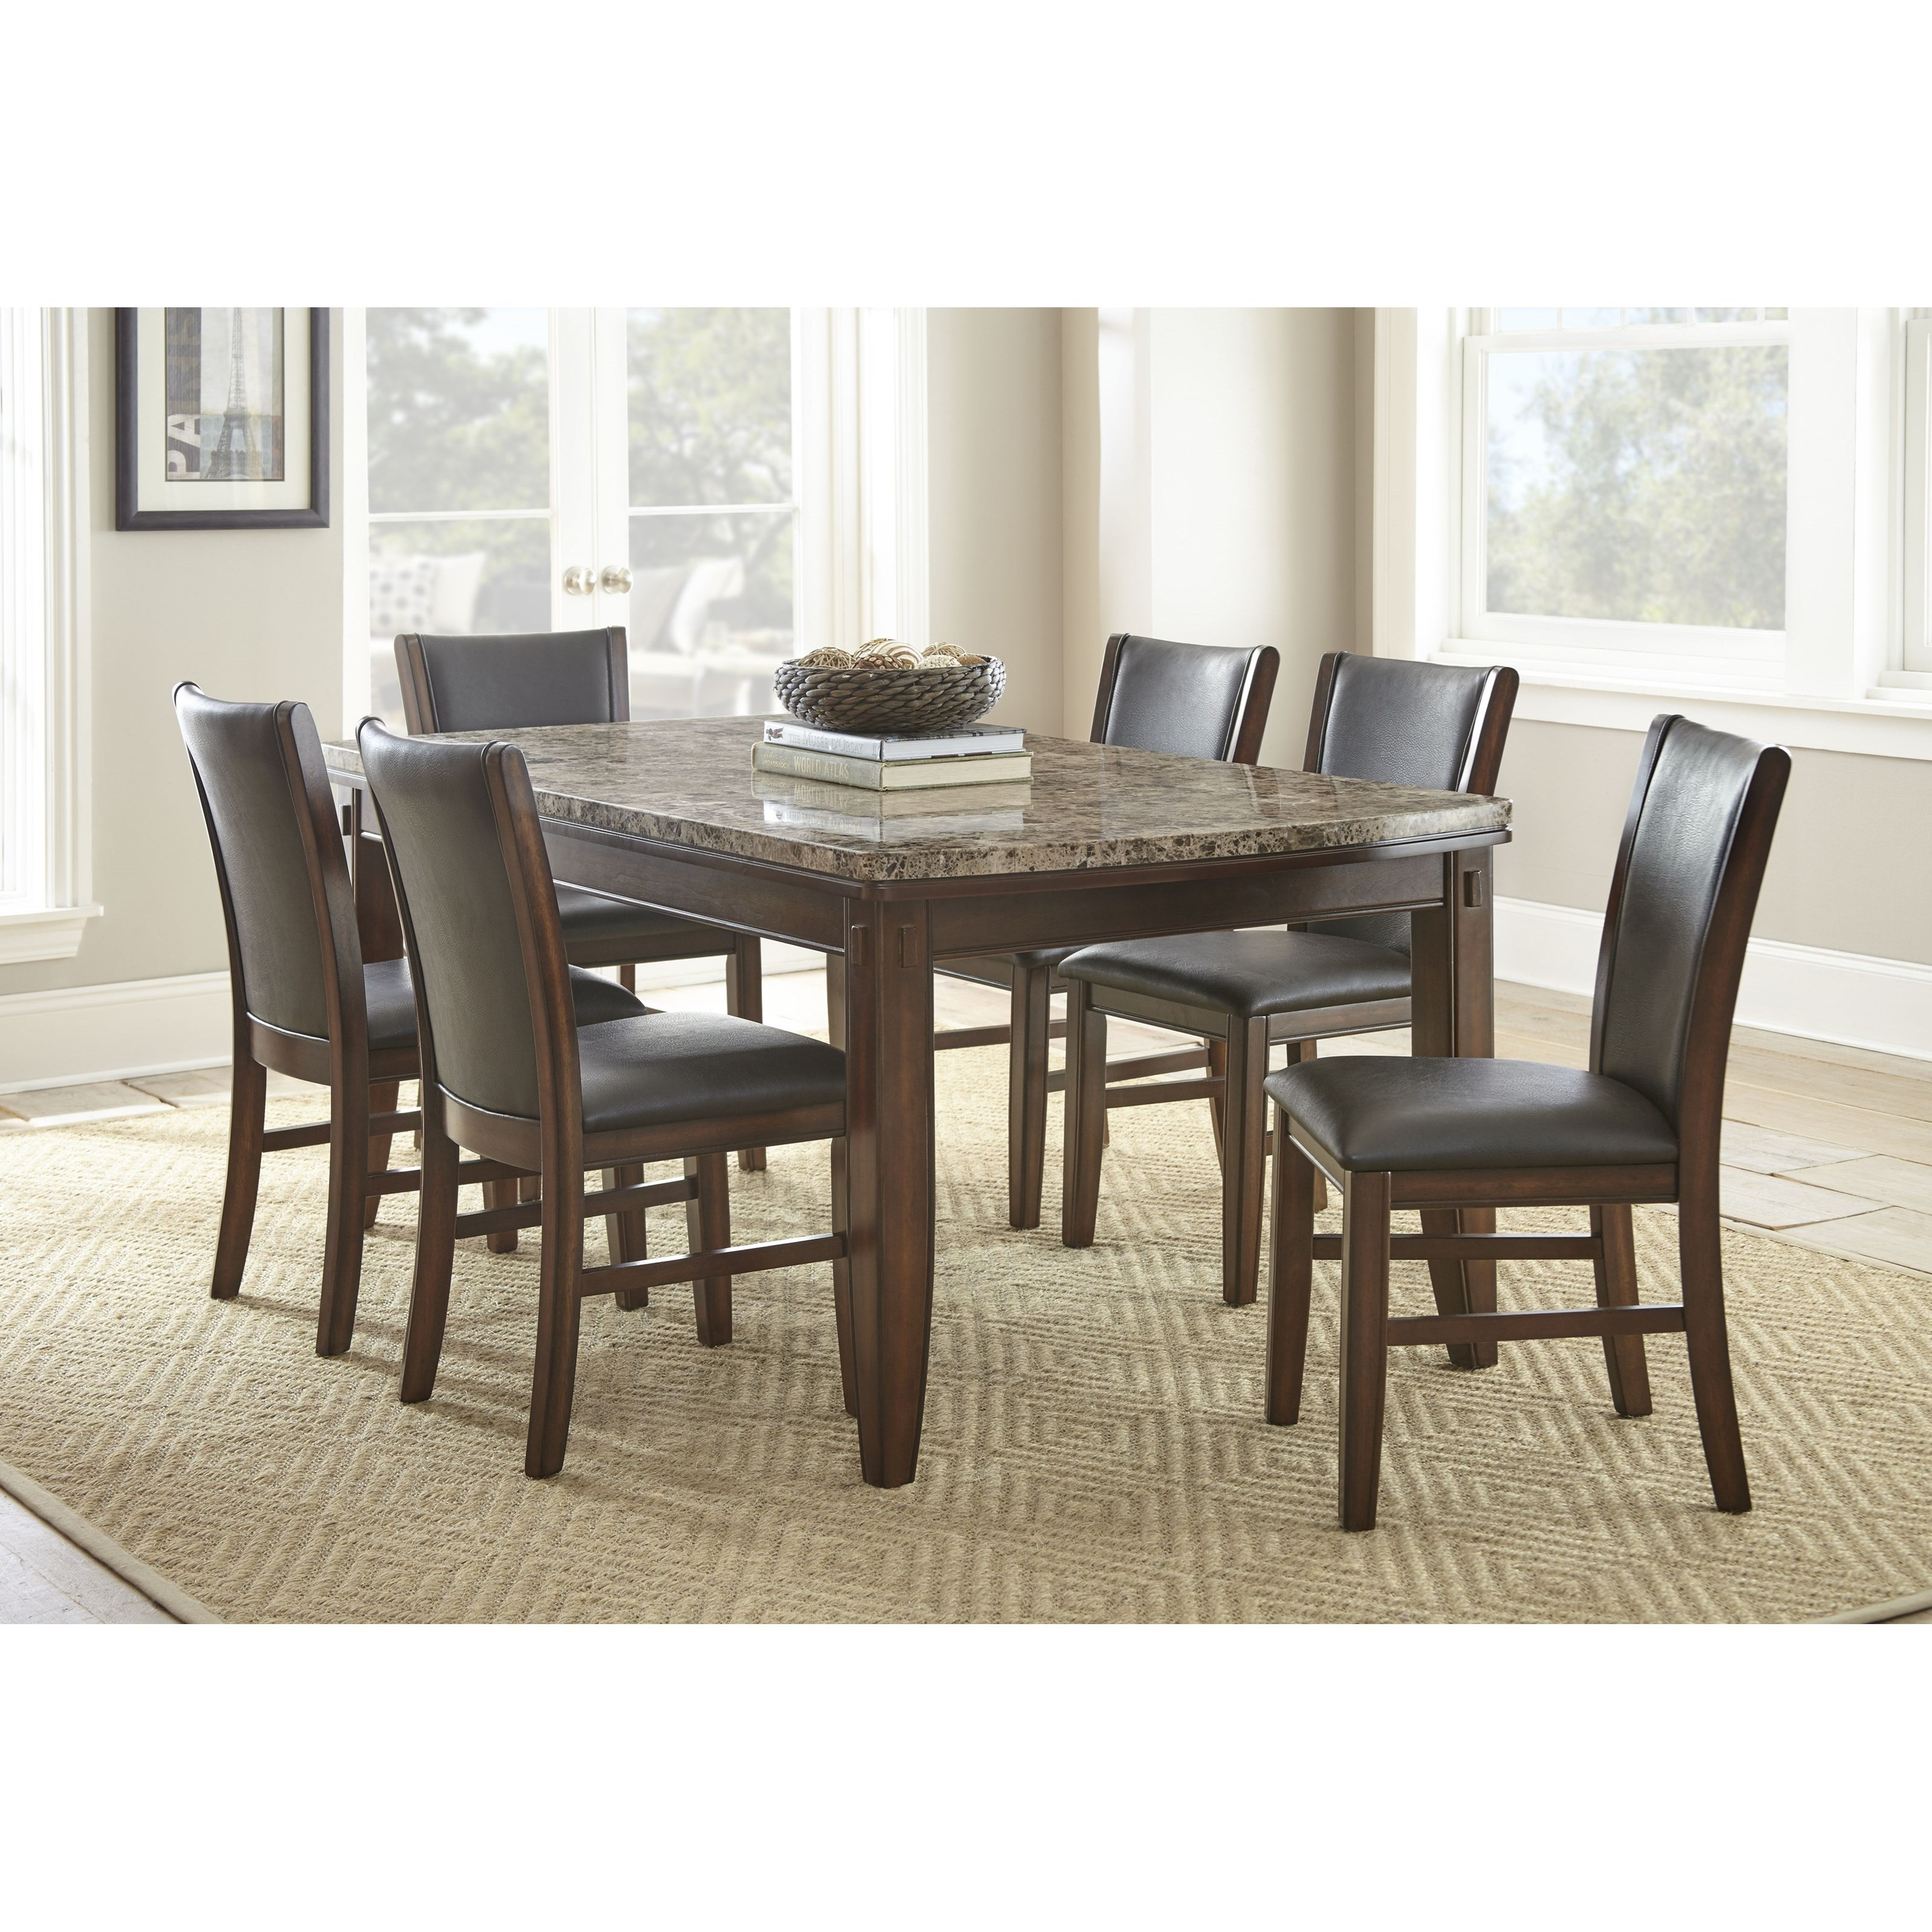 Steve Silver Eileen 7 Piece Brown Marble Topped Dining Table With  Upholstered Side Chair Set